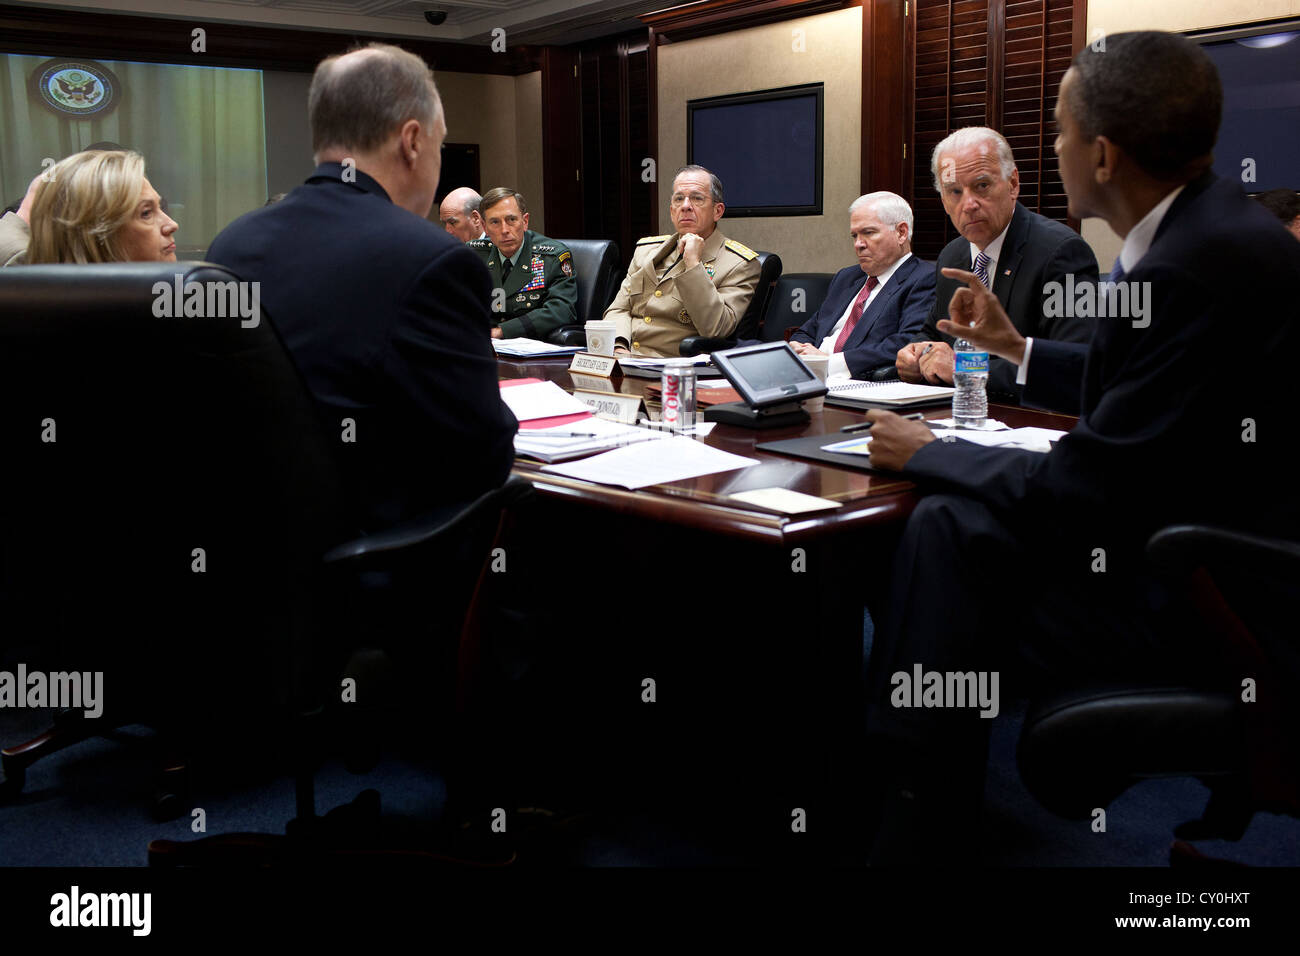 US President Barack Obama meets with his National Security Staff June 21, 2011 in the Situation Room of the White - Stock Image